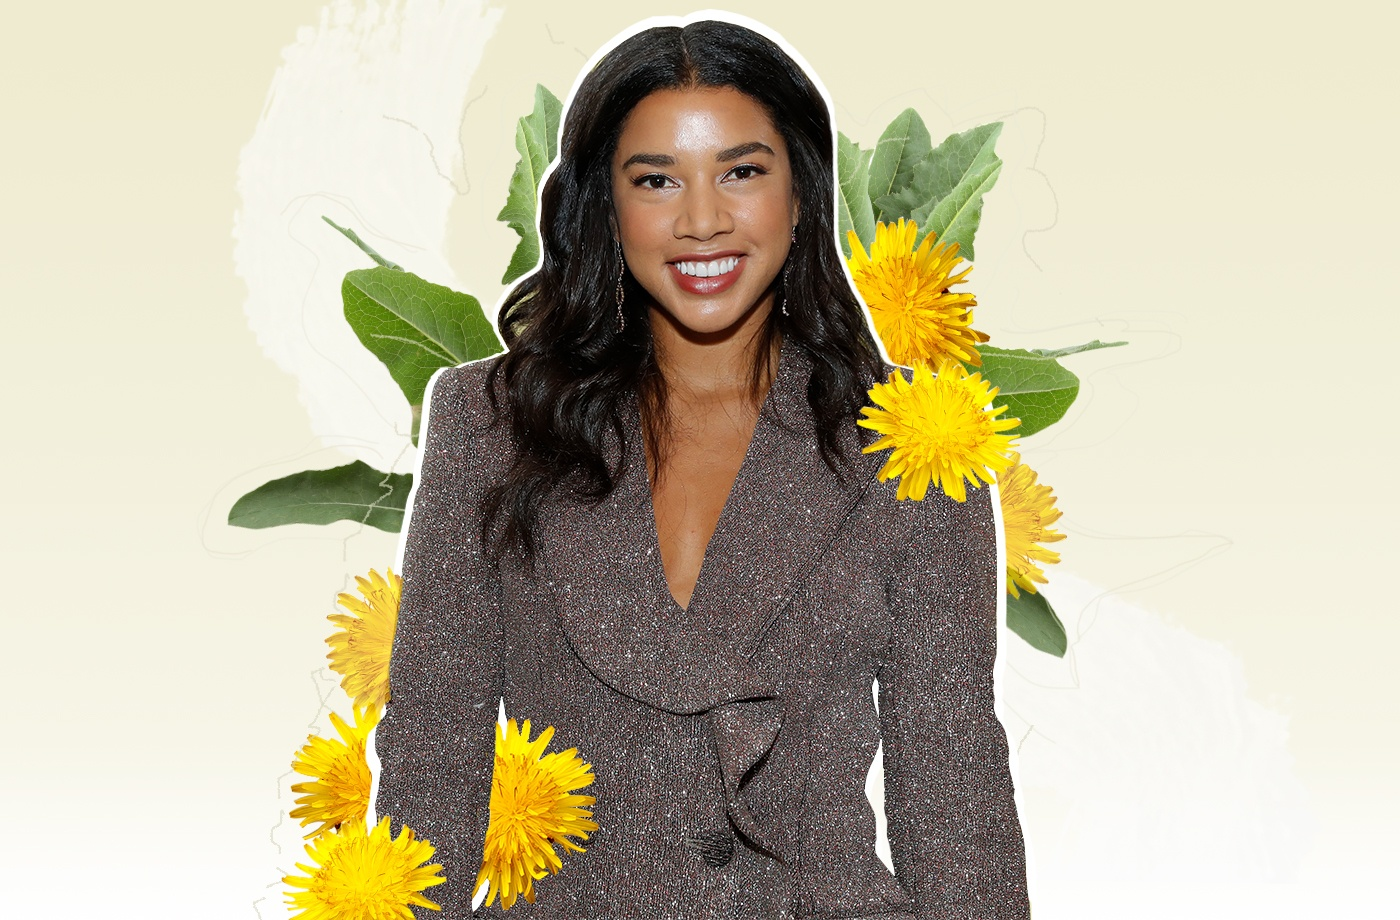 Thumbnail for Why Hannah Bronfman swears by dandelion root for an energizing kick in the a.m.